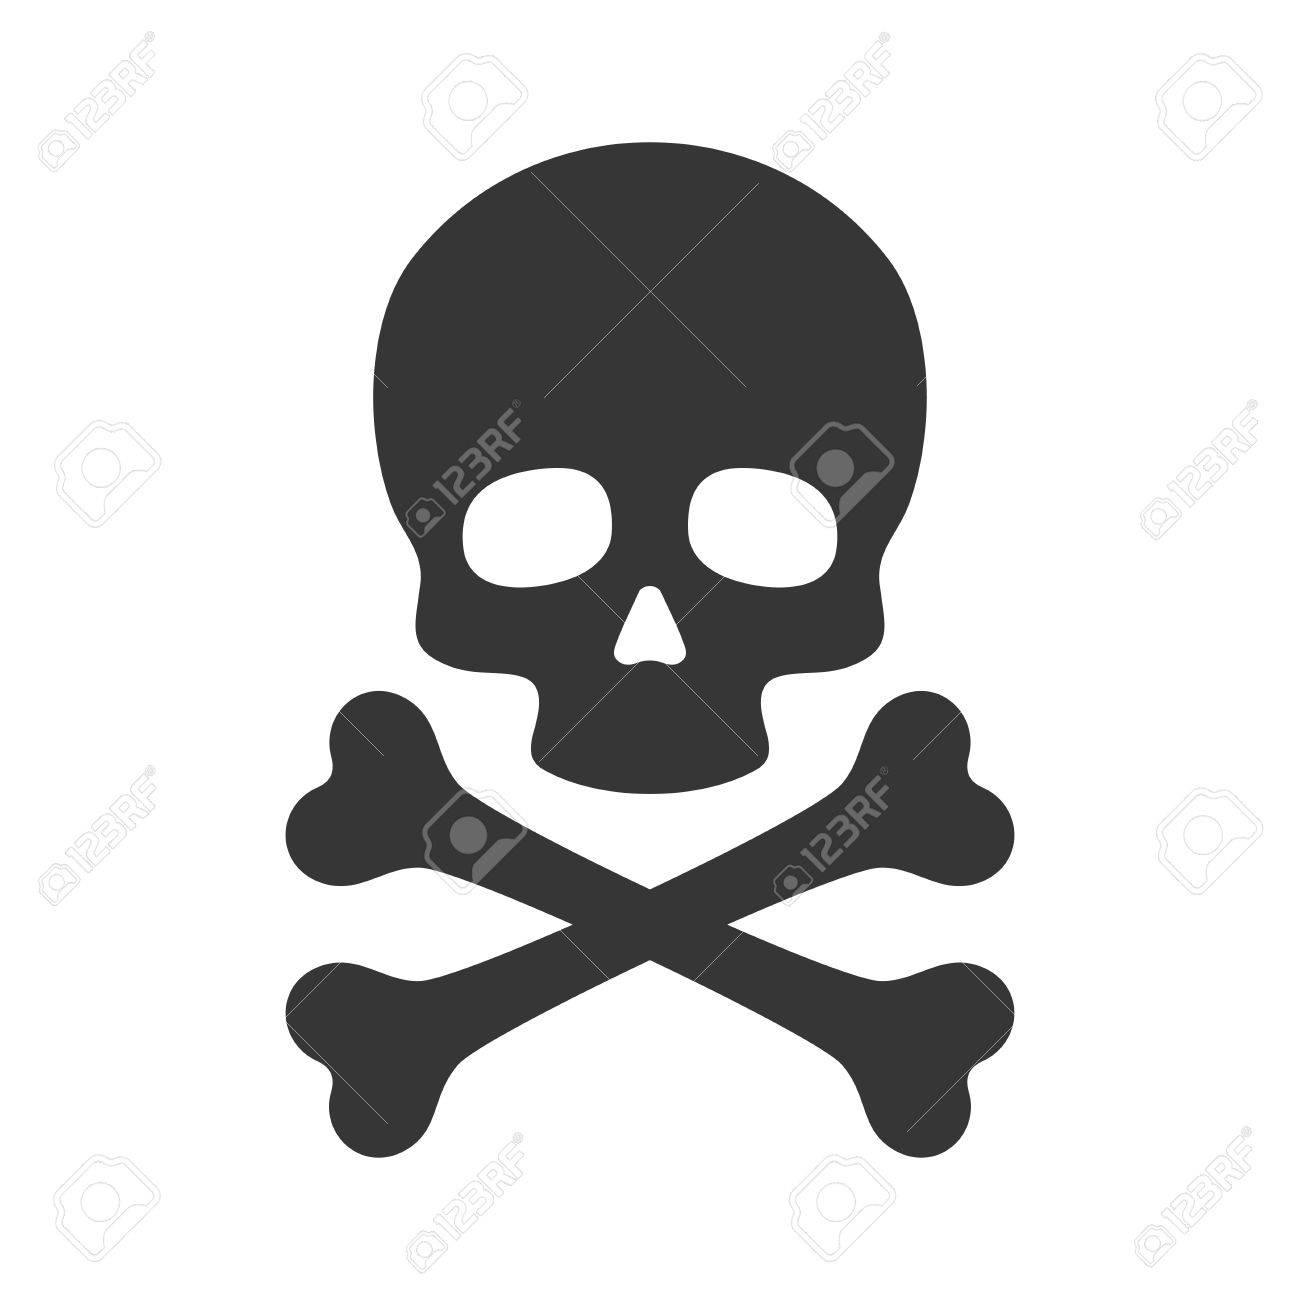 skull and crossbones icon on white background vector illustration